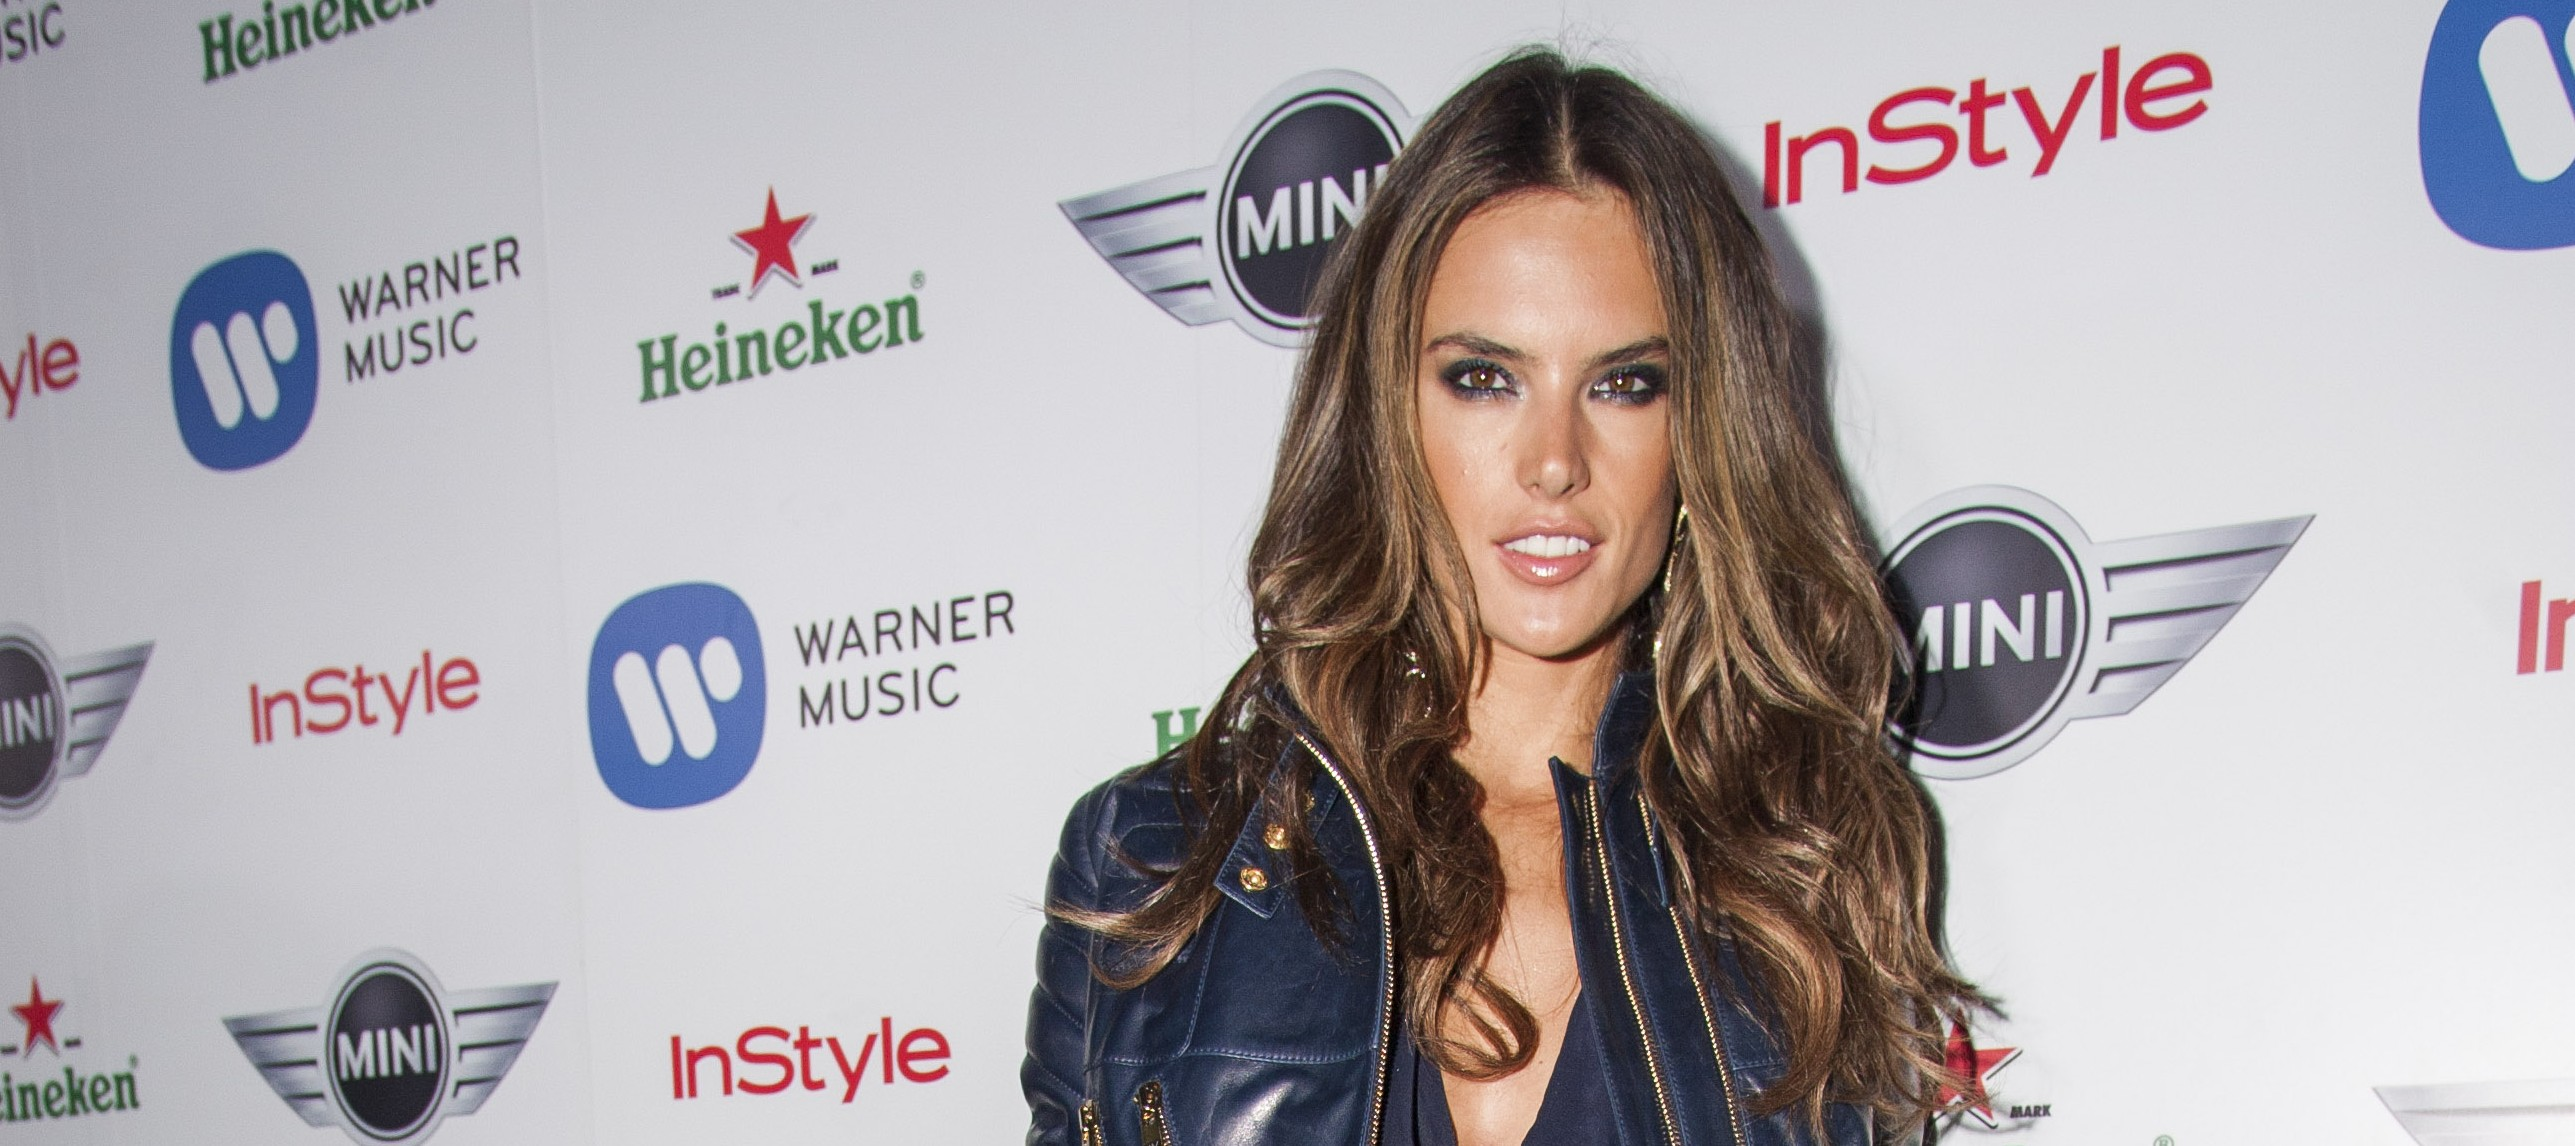 Alessandra Ambrosio at the Warner Music Grammy Party, sponsored by Heineken, at the Chateau Marmont in L.A. on Feb. 10.